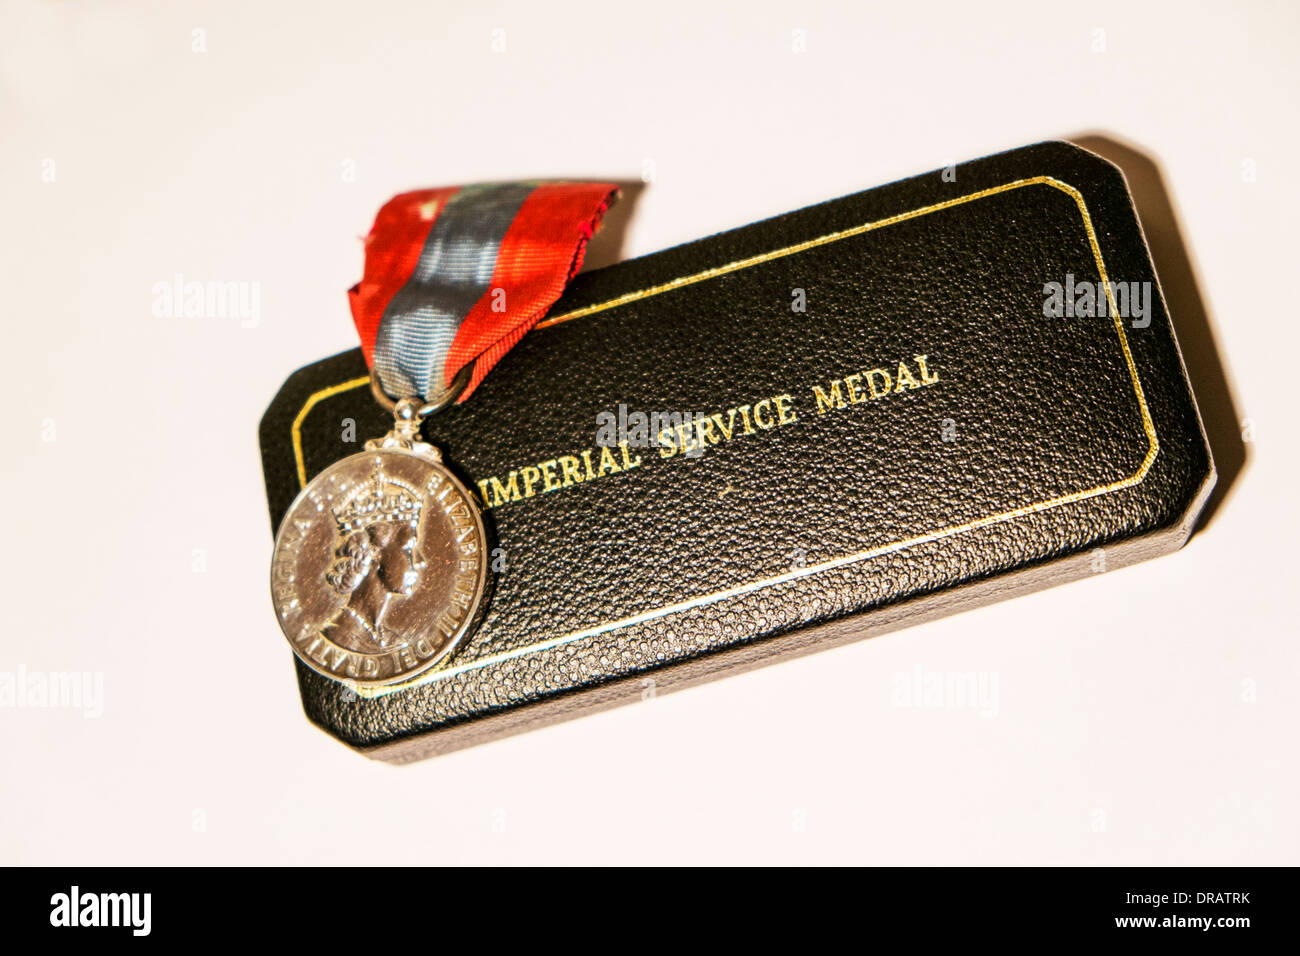 Imperial service medal  Military bravery war decoration in case royal mint - Stock Image